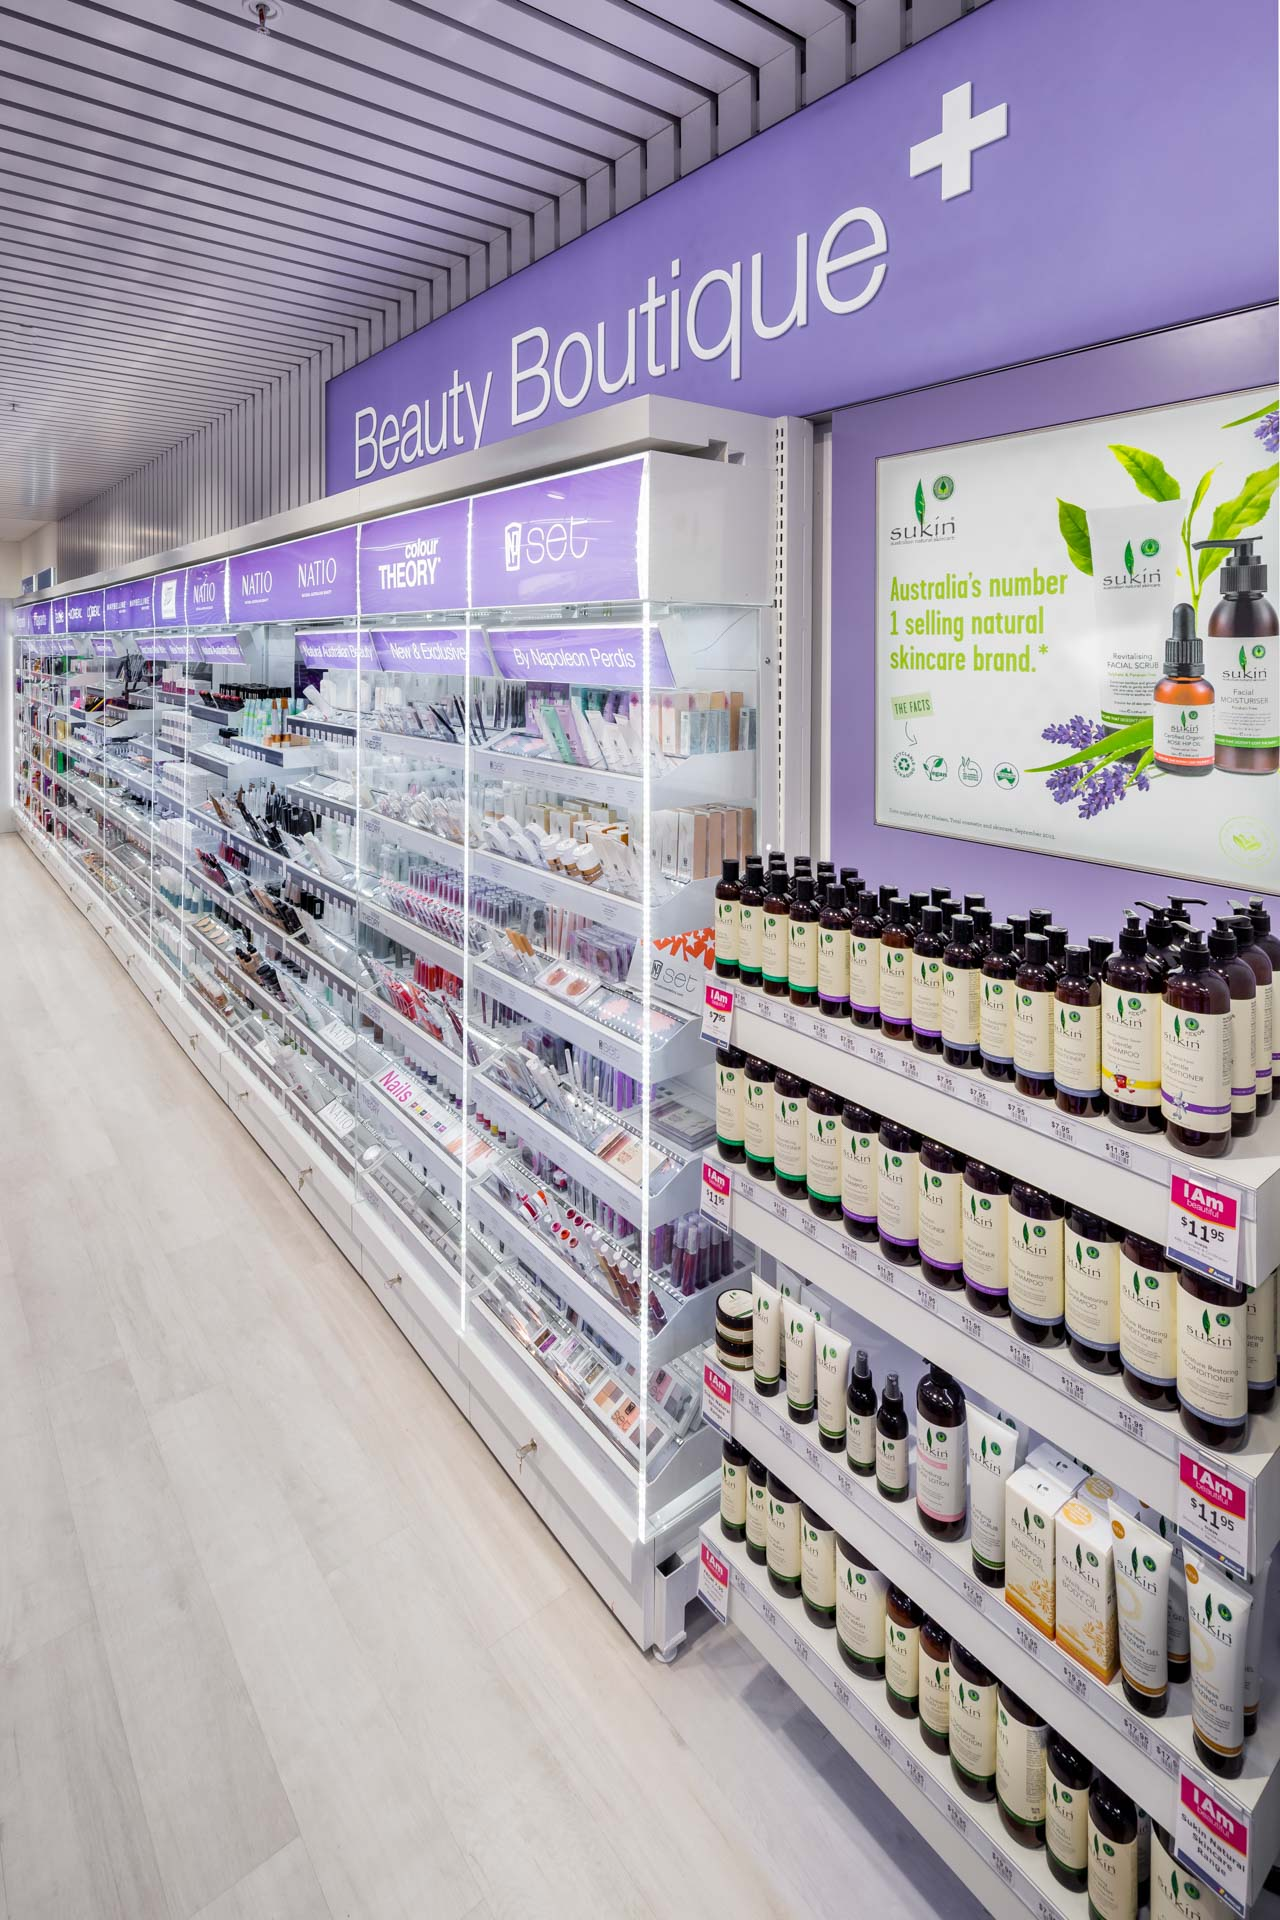 amcal+ pharmacy internal photograph of beauty products by sigma pharmaceuticals in stud park shopping centre